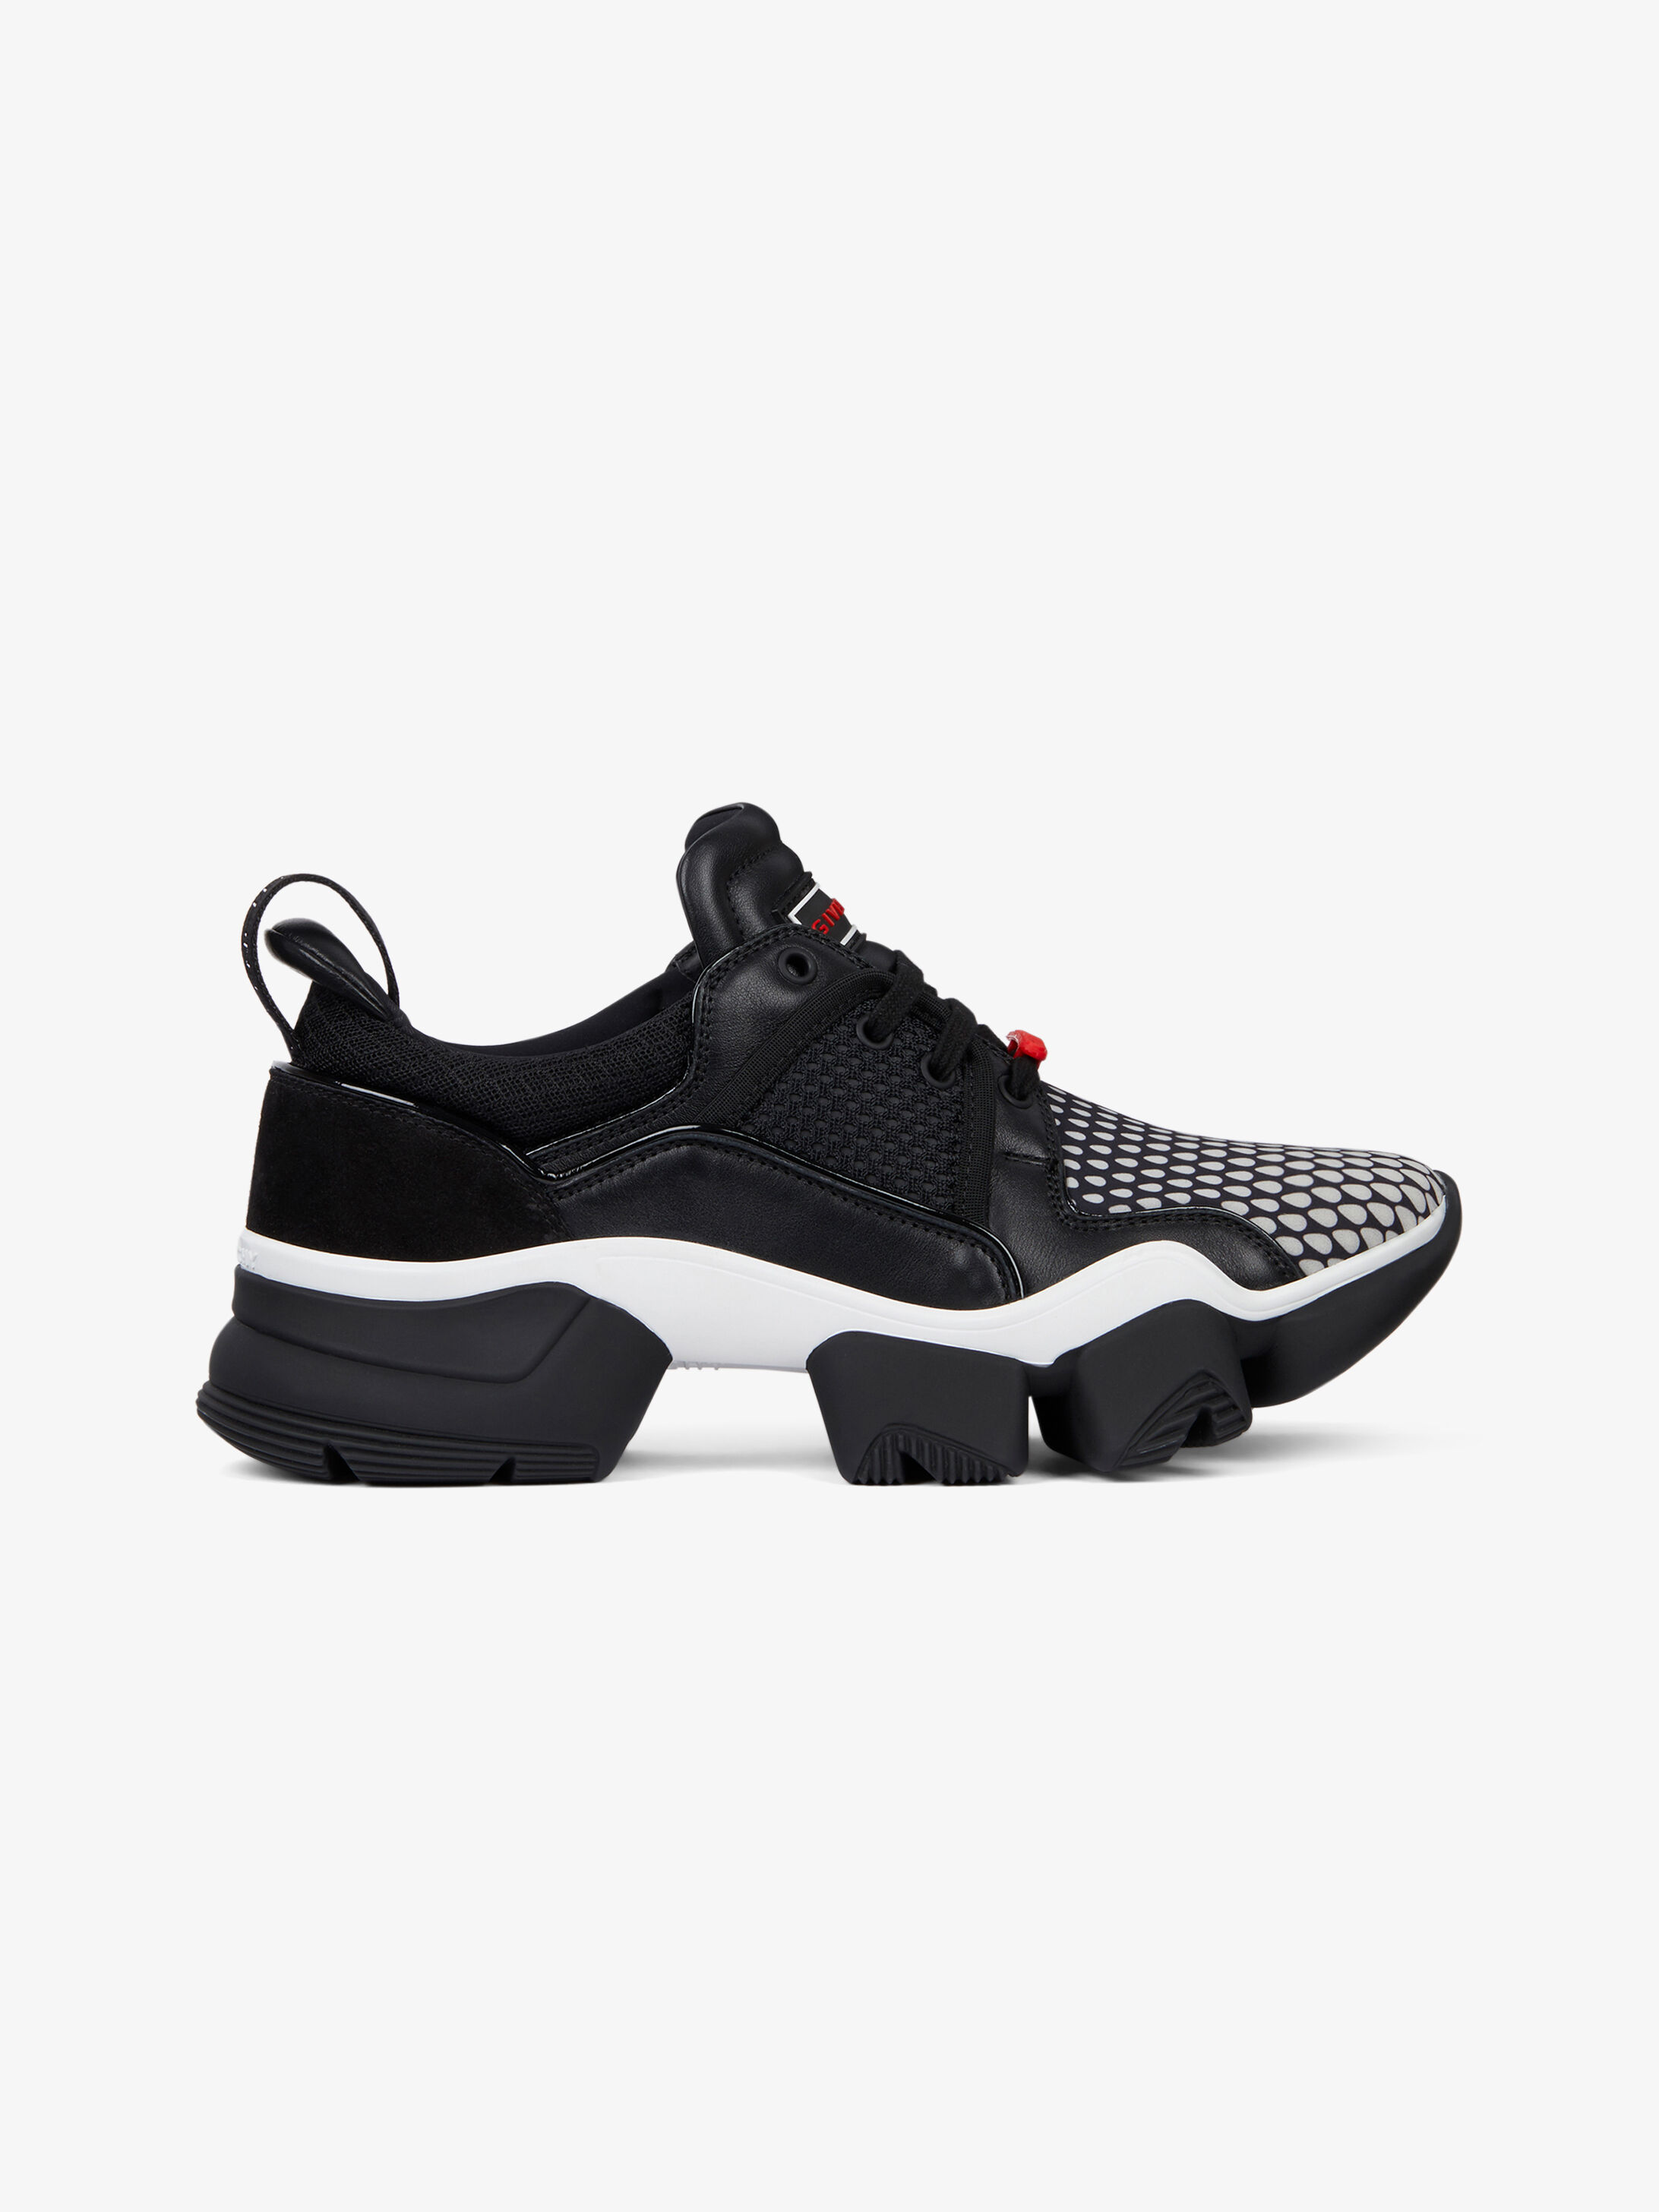 352c82d6d76 Men s Sneakers collection by Givenchy.